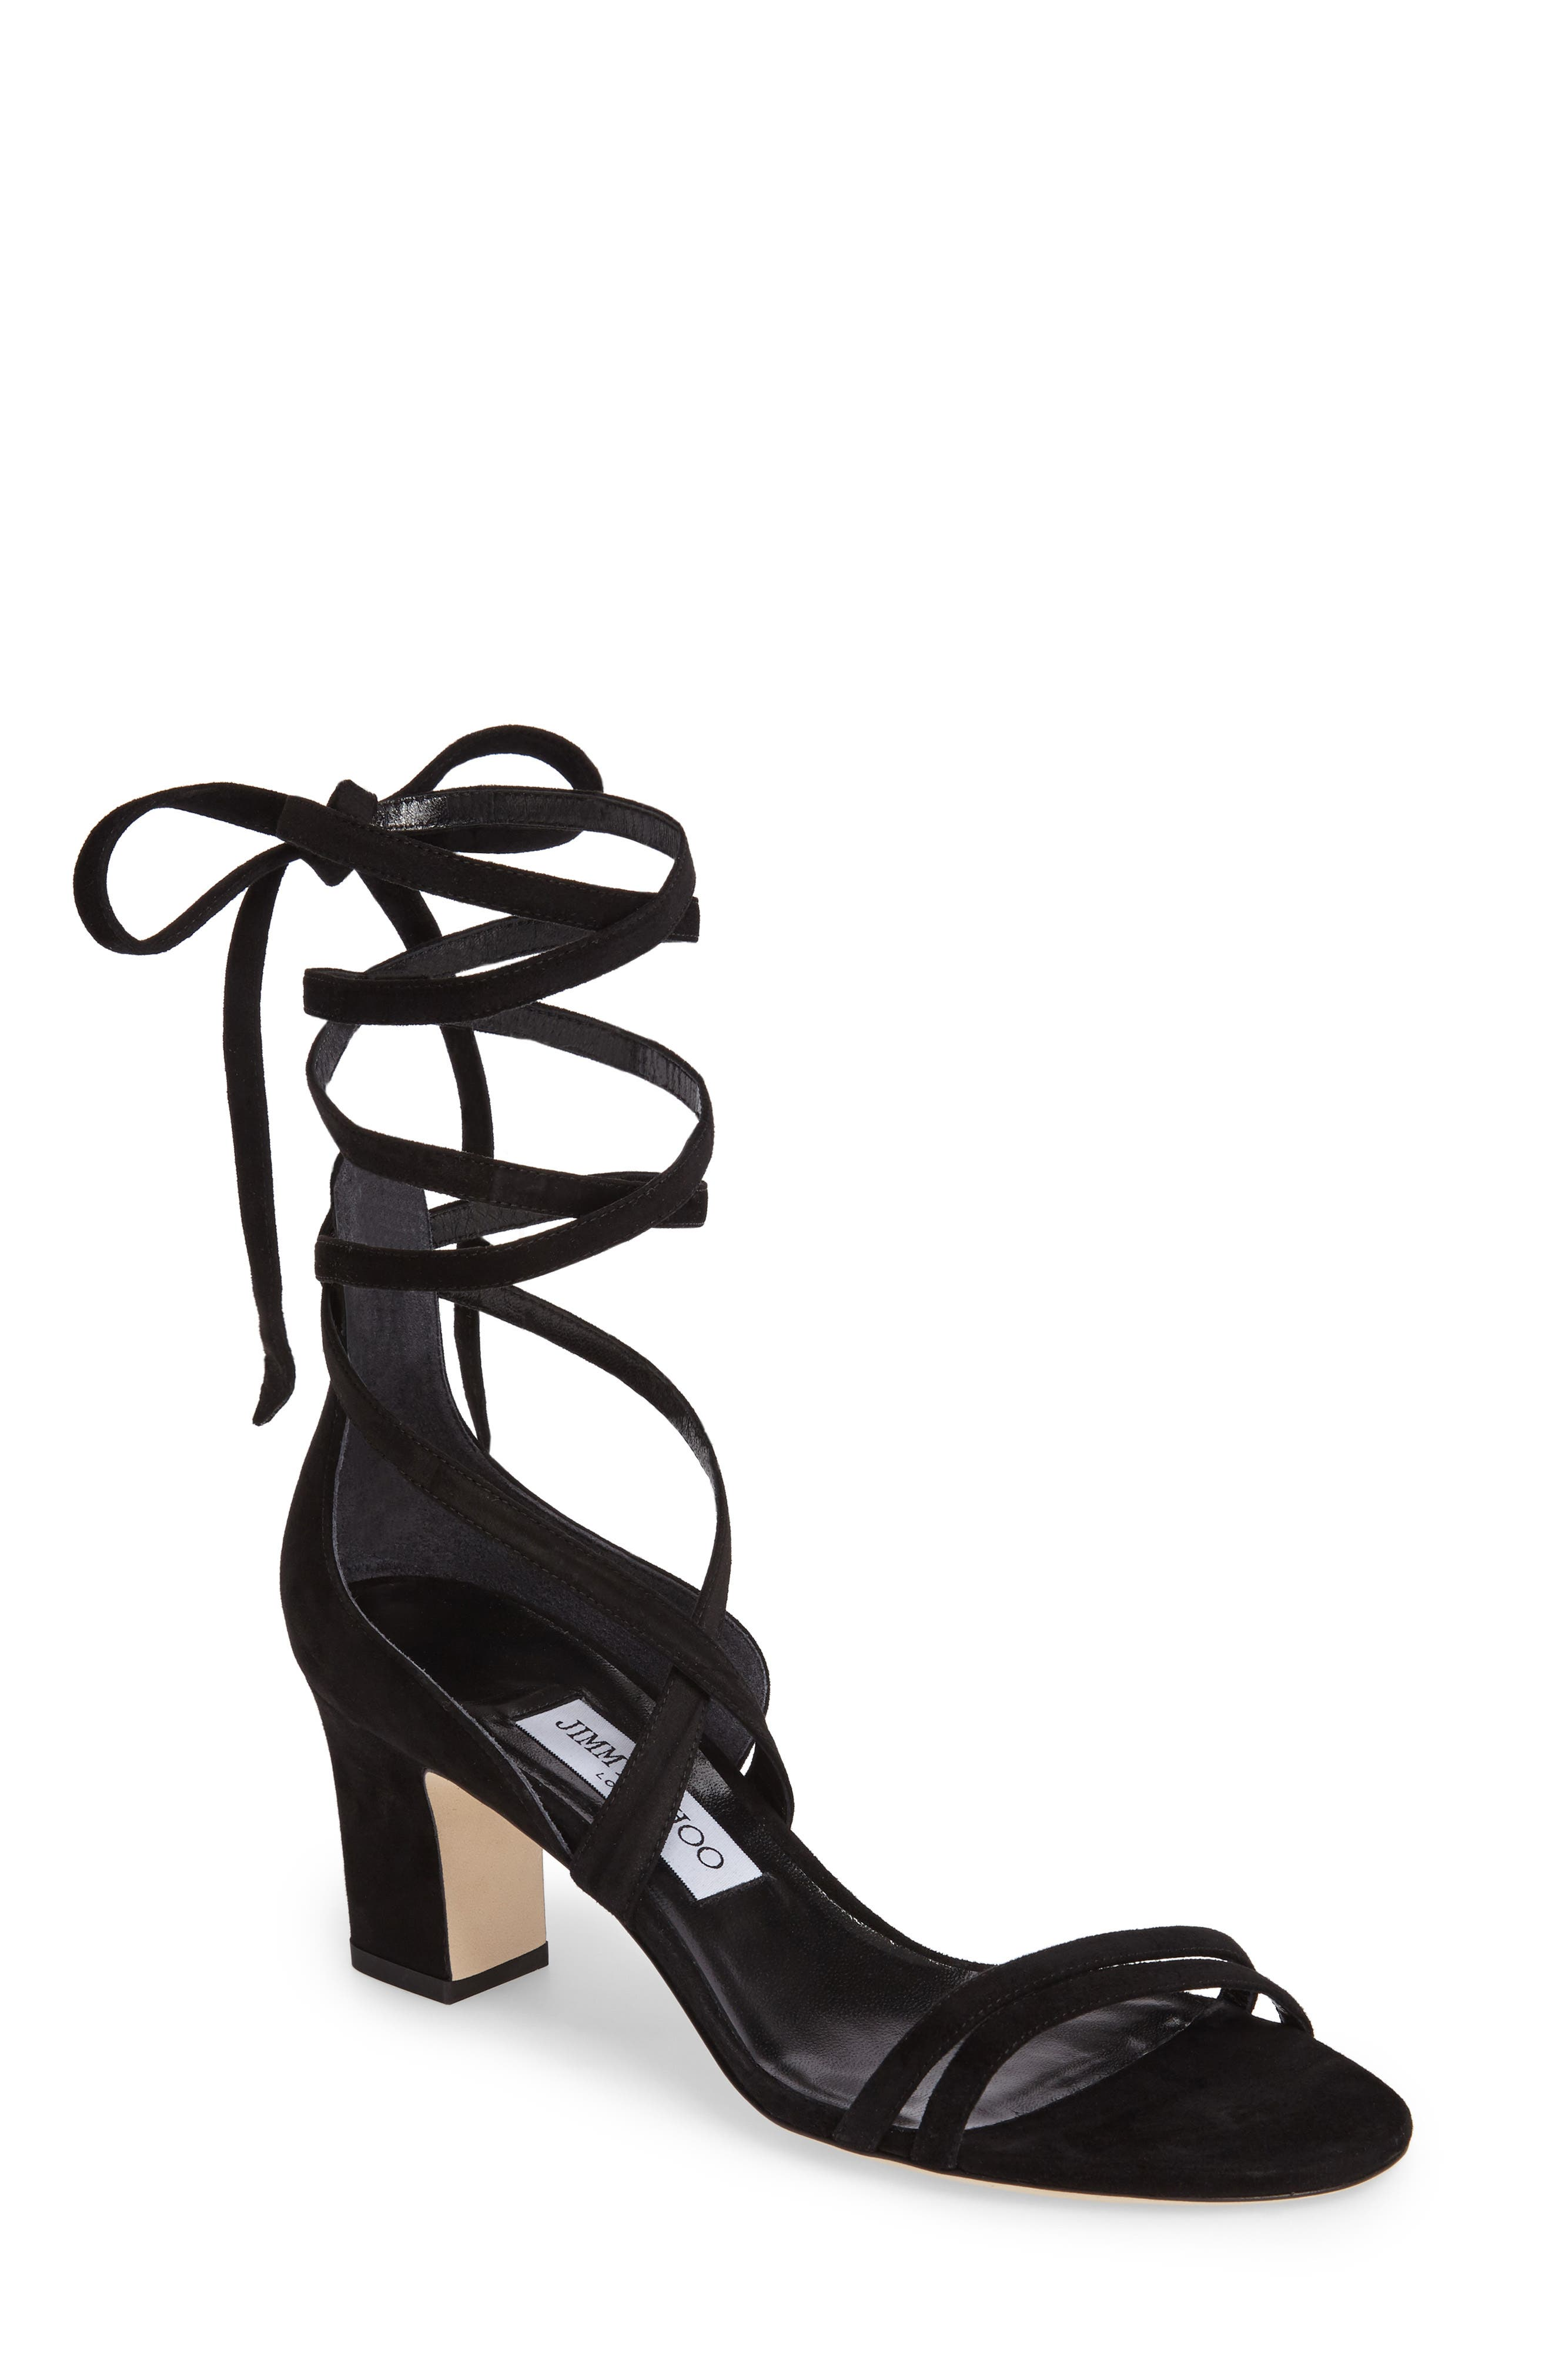 Alternate Image 1 Selected - Jimmy Choo Flynn Sandal (Women)